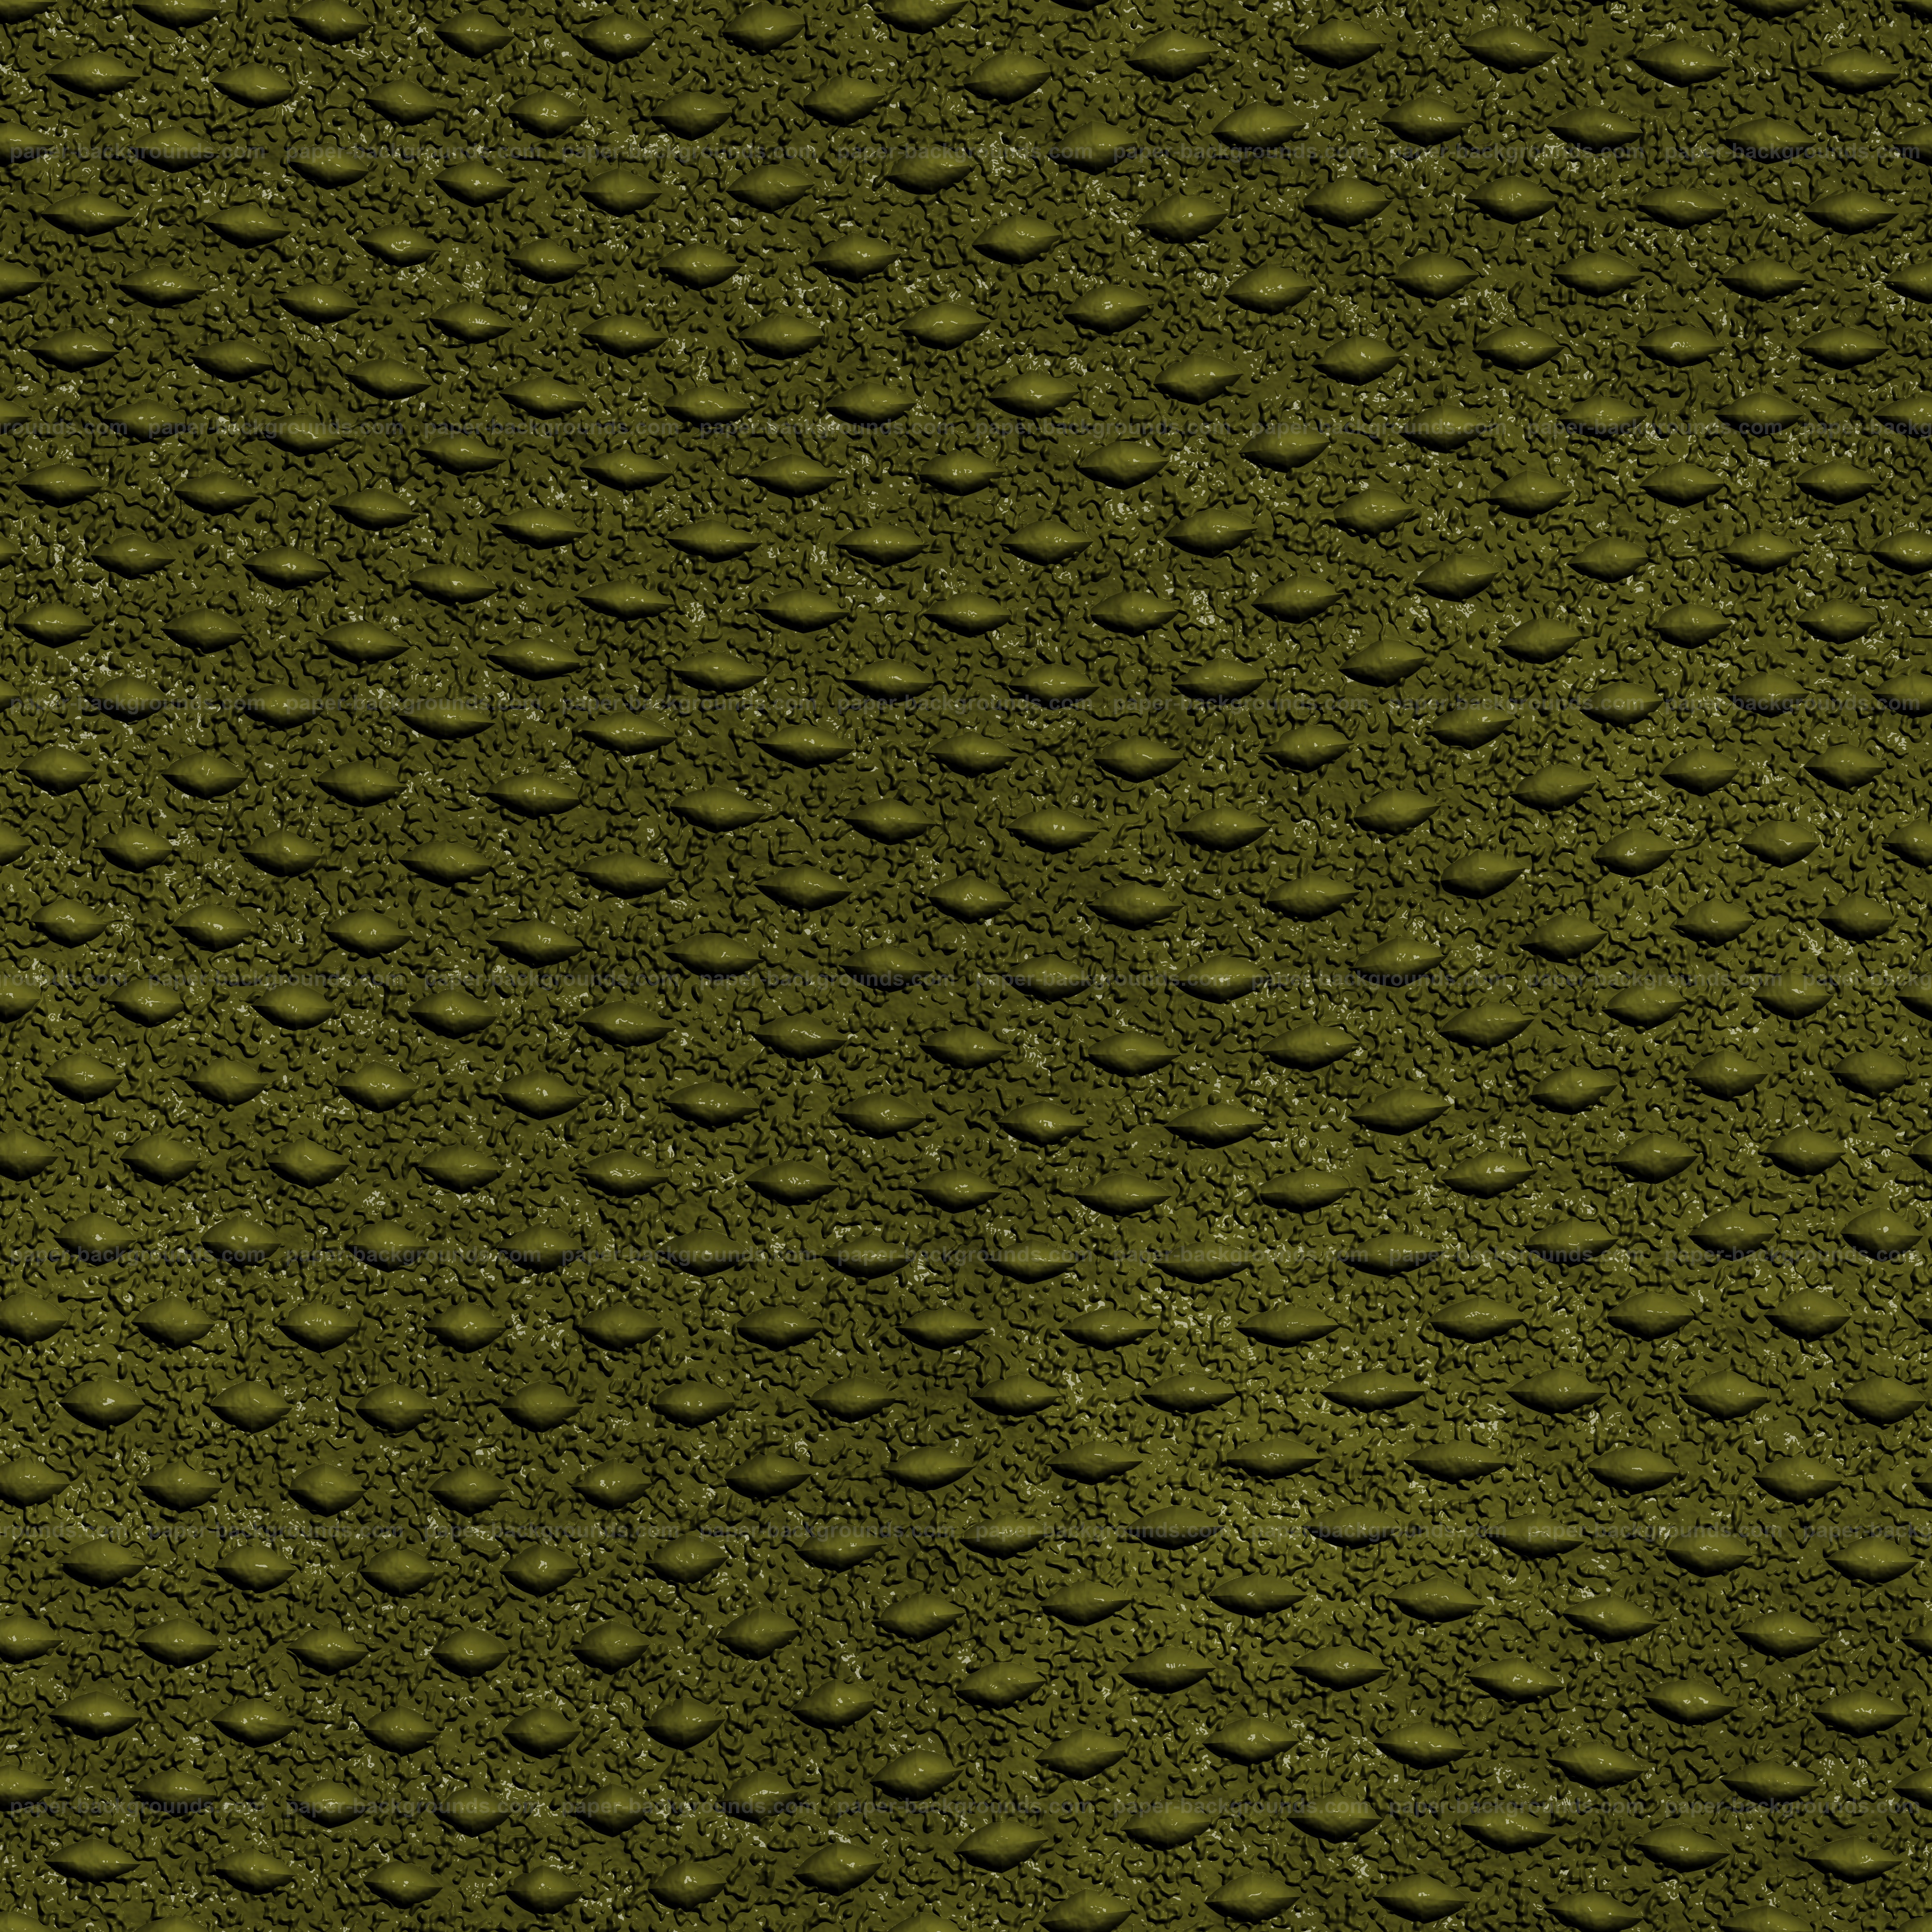 Paper backgrounds stones textures royalty free hd paper - Paper Backgrounds Seamless Green Crocodile Reptile Skin